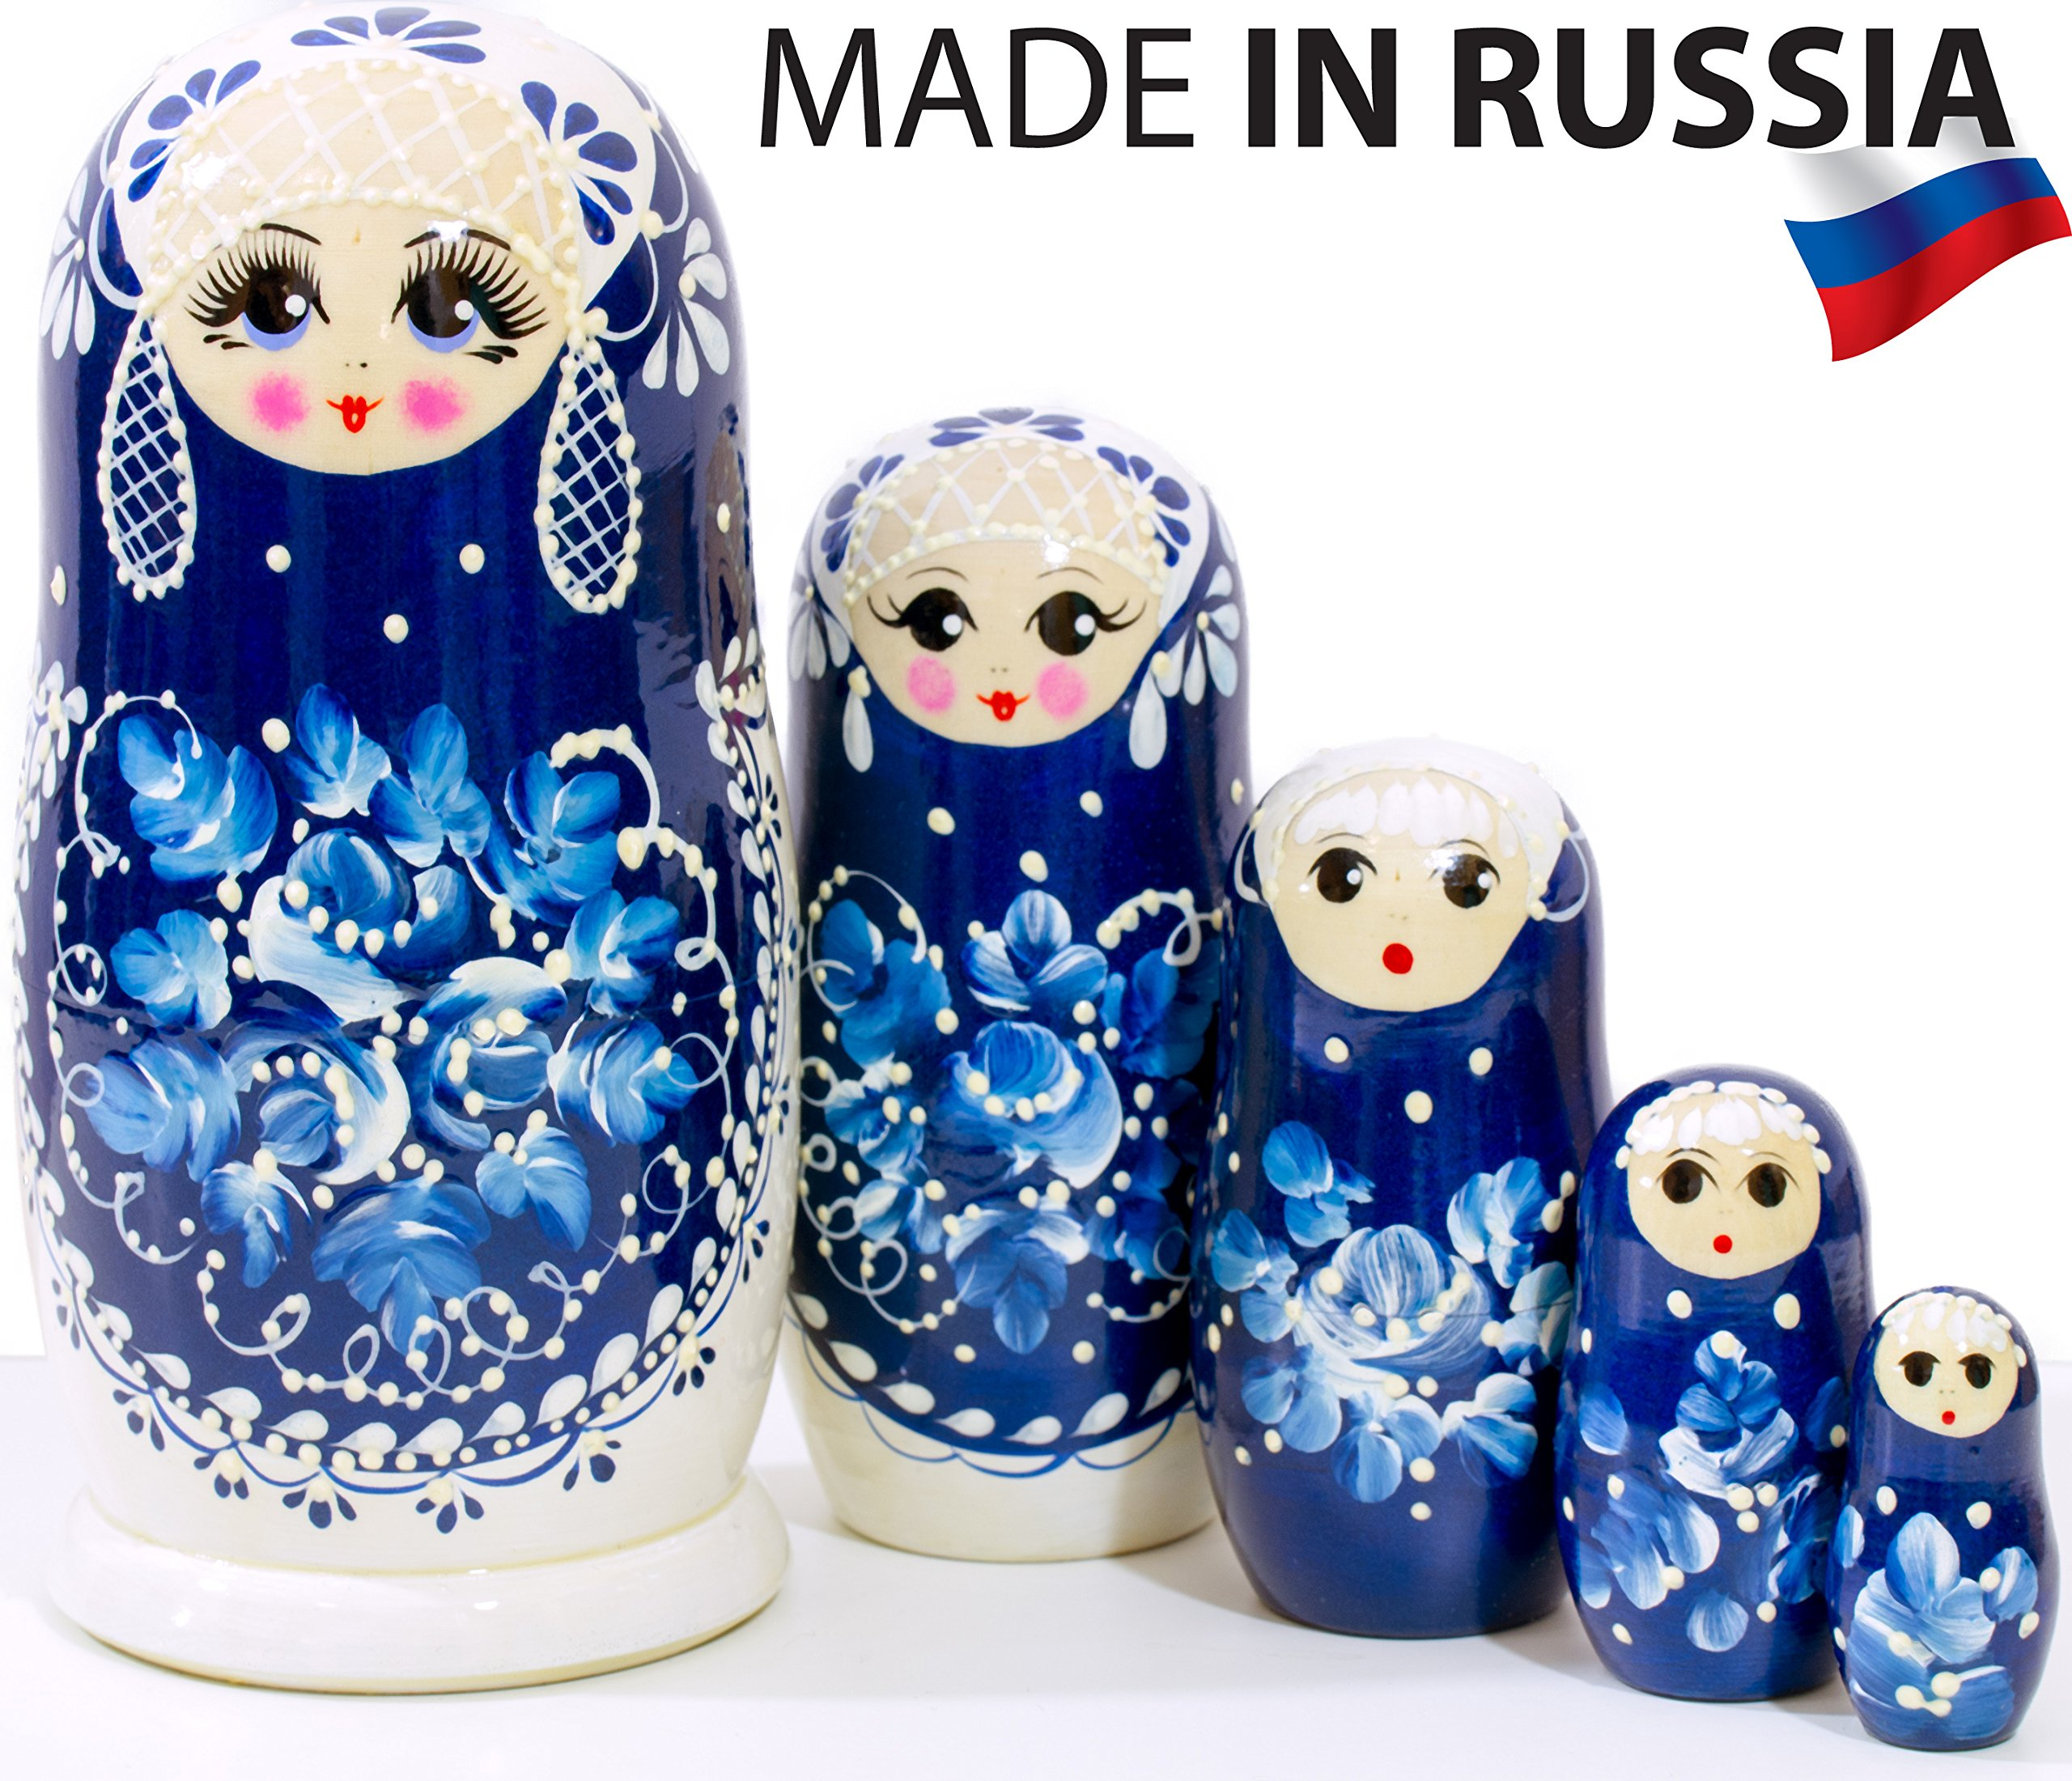 Russian Nesting Doll -Snow Queen - Hand Painted in Russia - MEDIUM SIZE - Traditional Matryoshka Babushka (6.75`` (5 dolls in 1), Blue) (6.75`` (5 dolls in 1), Snow Queen)